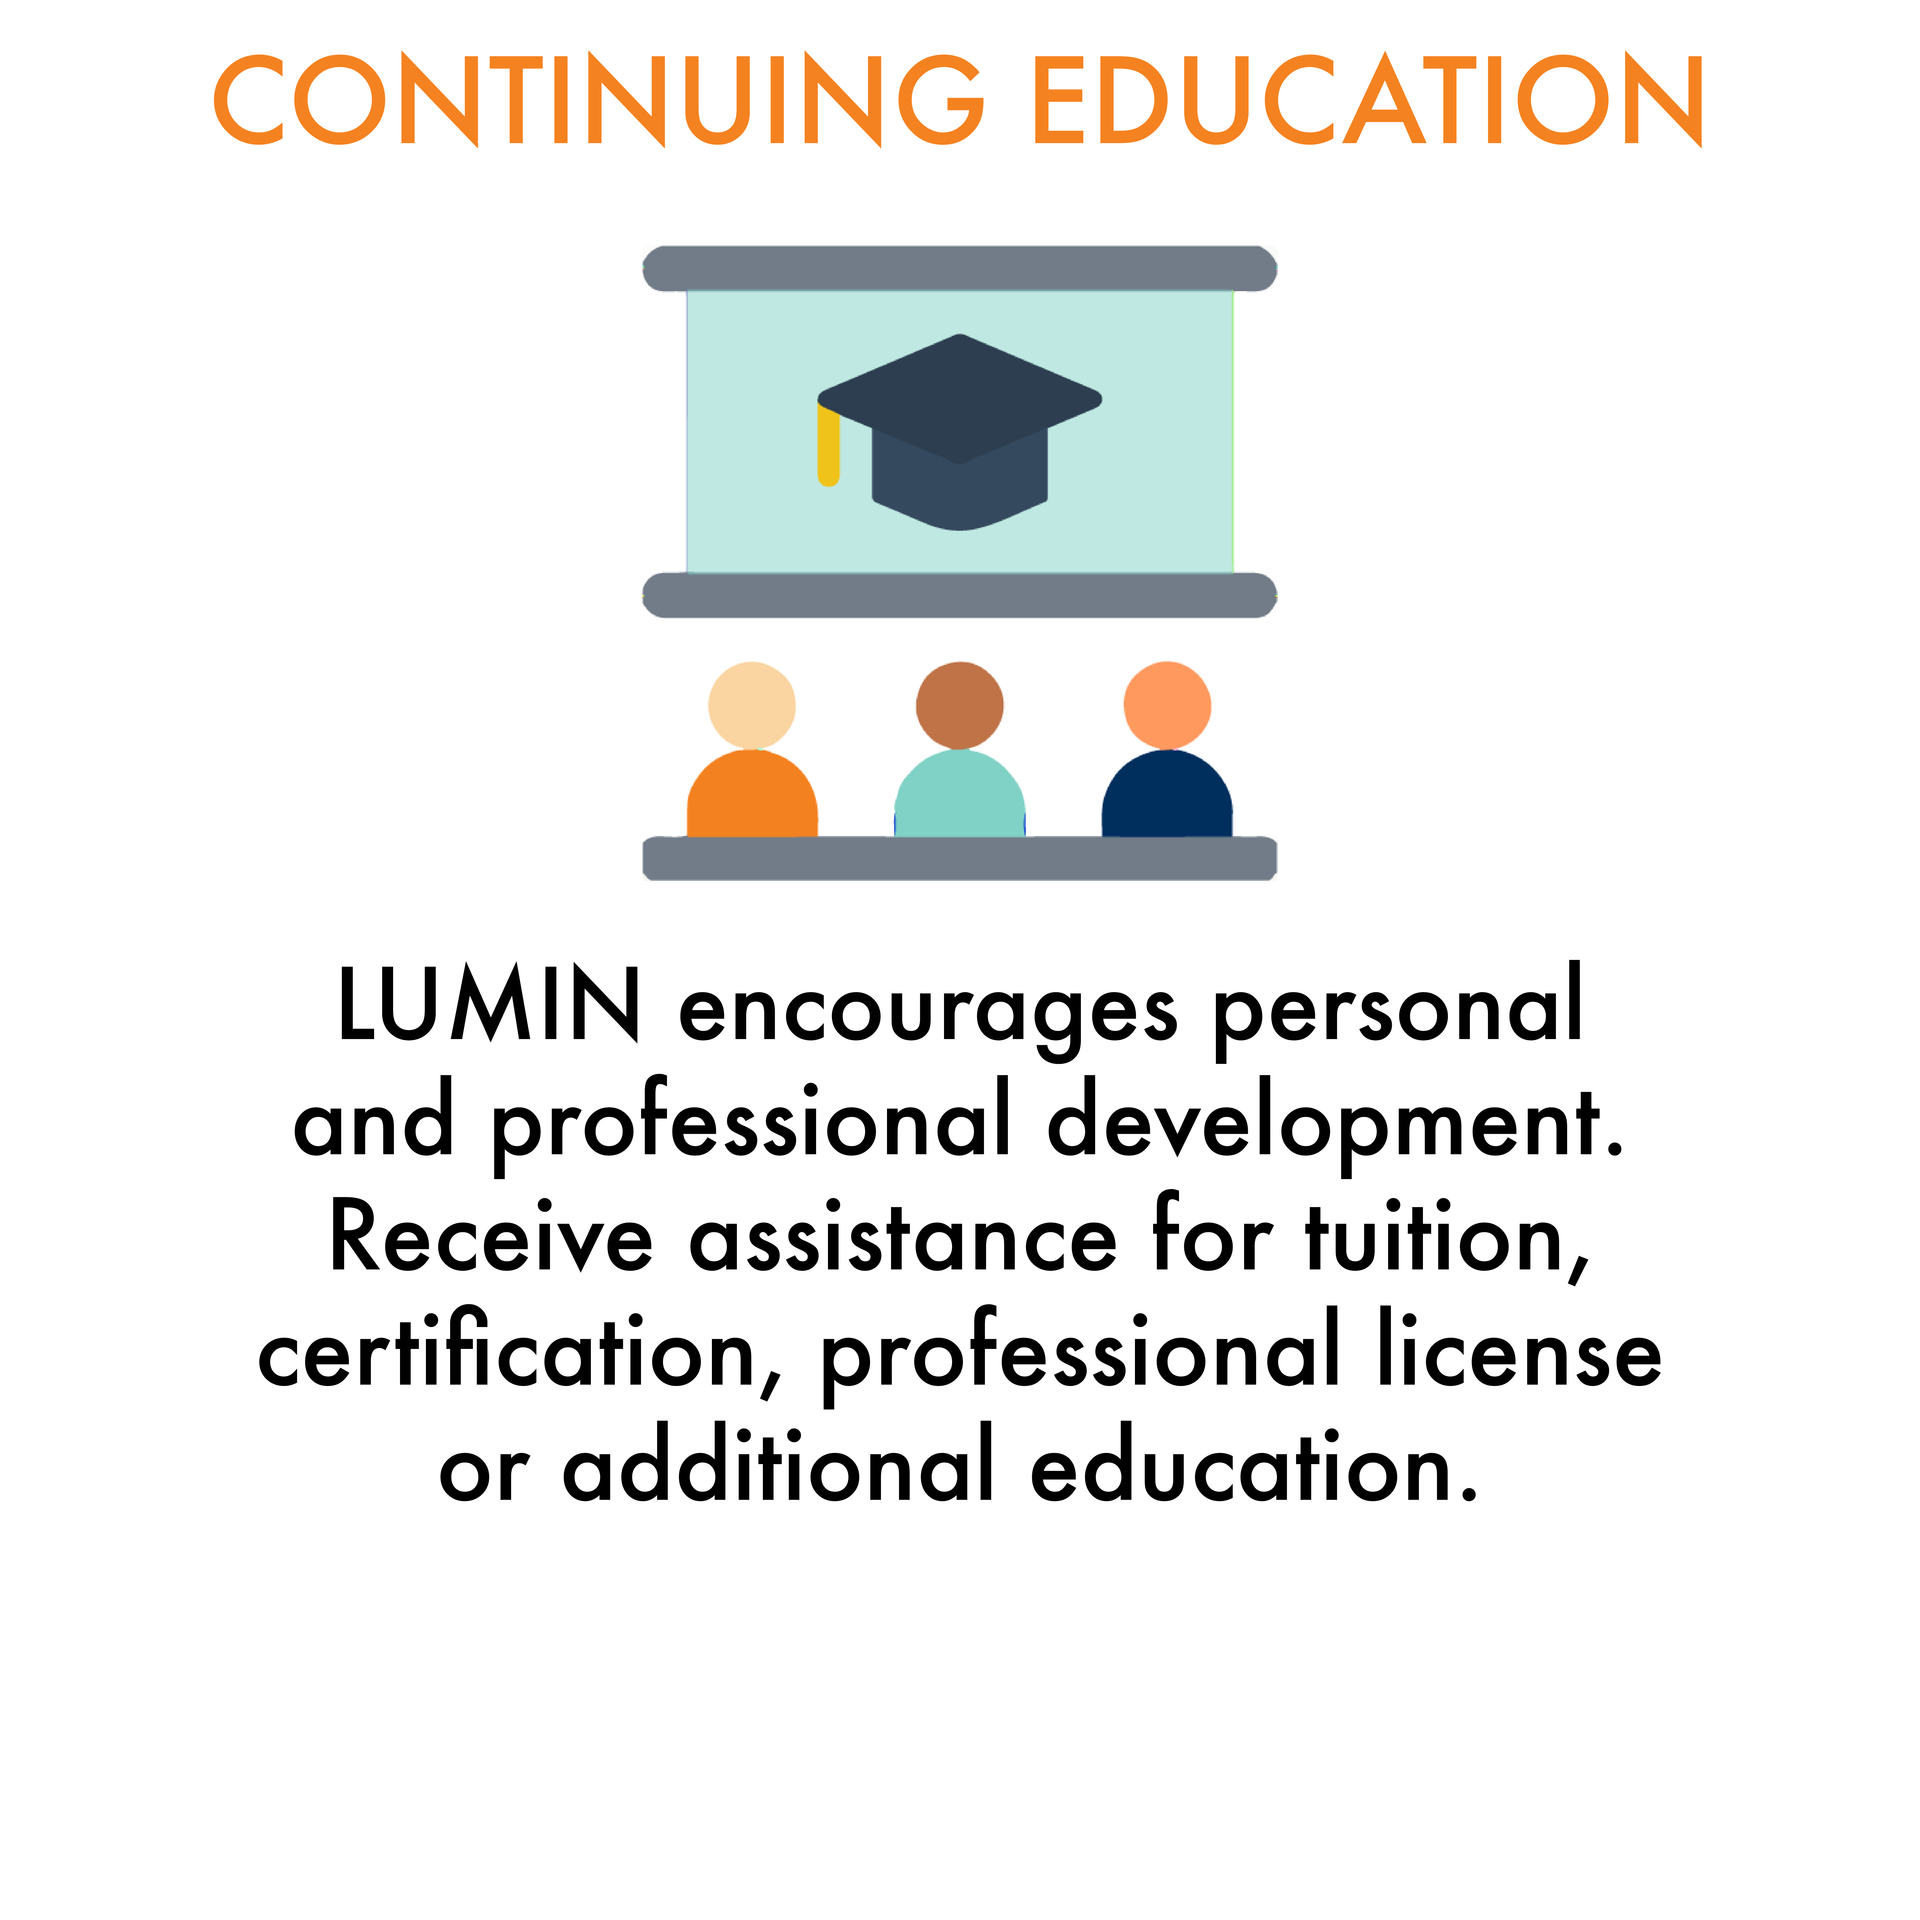 Continuing Education: LUMIN encourages personal and professional development.  Receive assistance for tuition, certification, professional license or additional education.